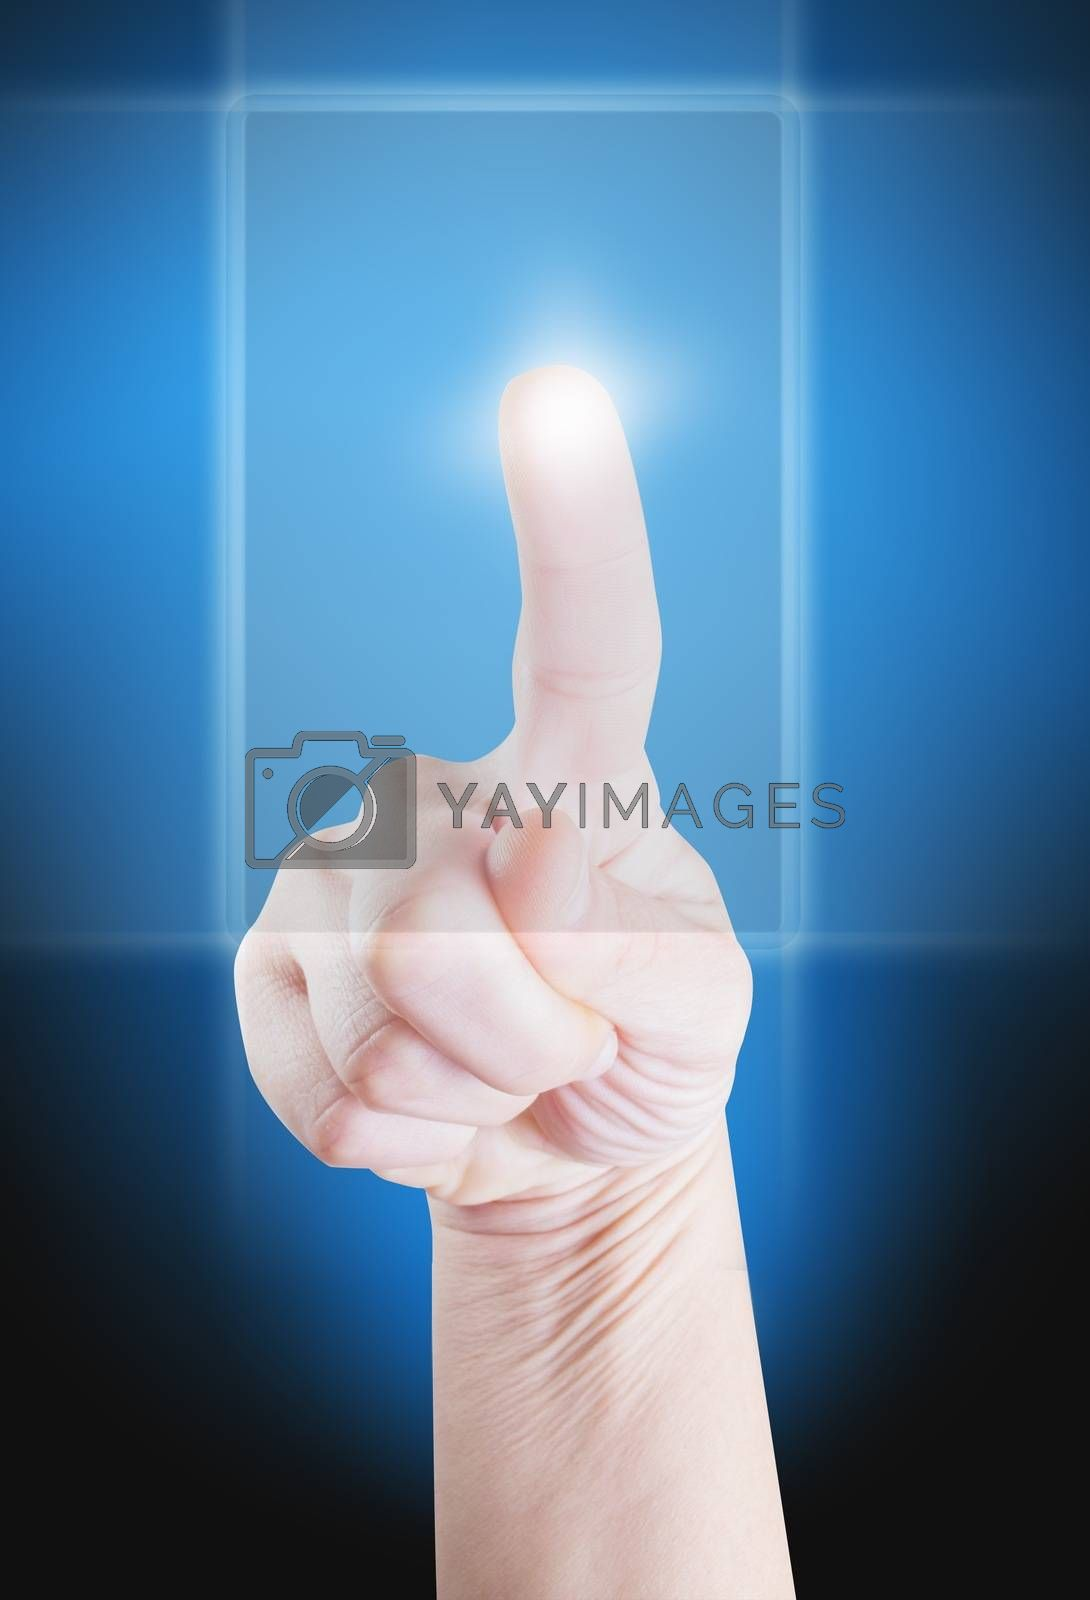 Picture of a finger pointing on a transparent device